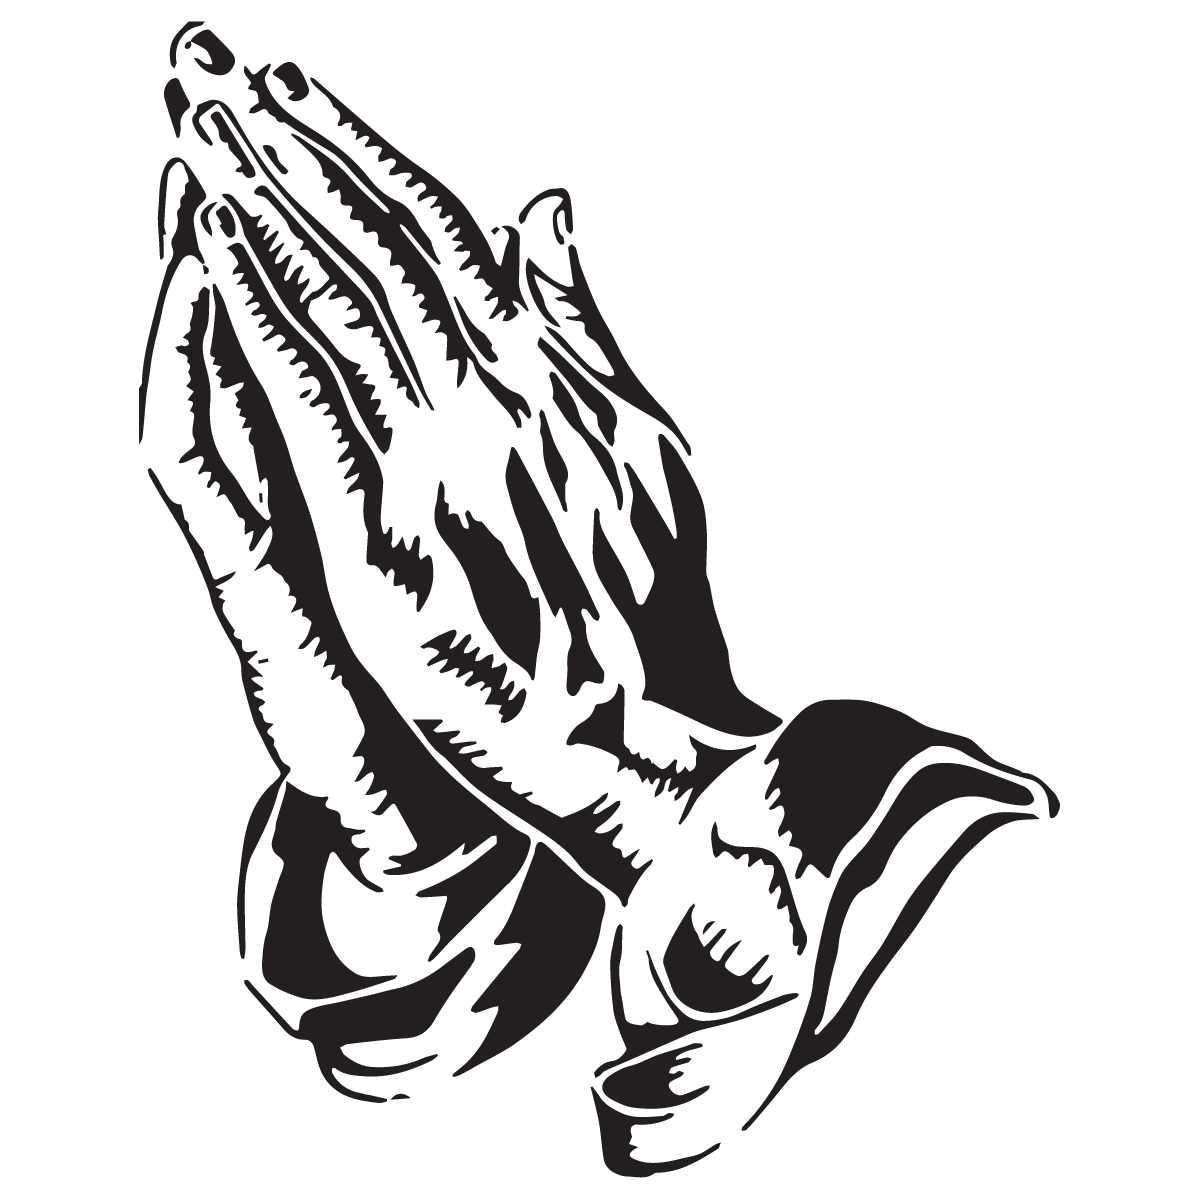 svg black and white stock Praying Hands Prayer Religion Drawing Clip art